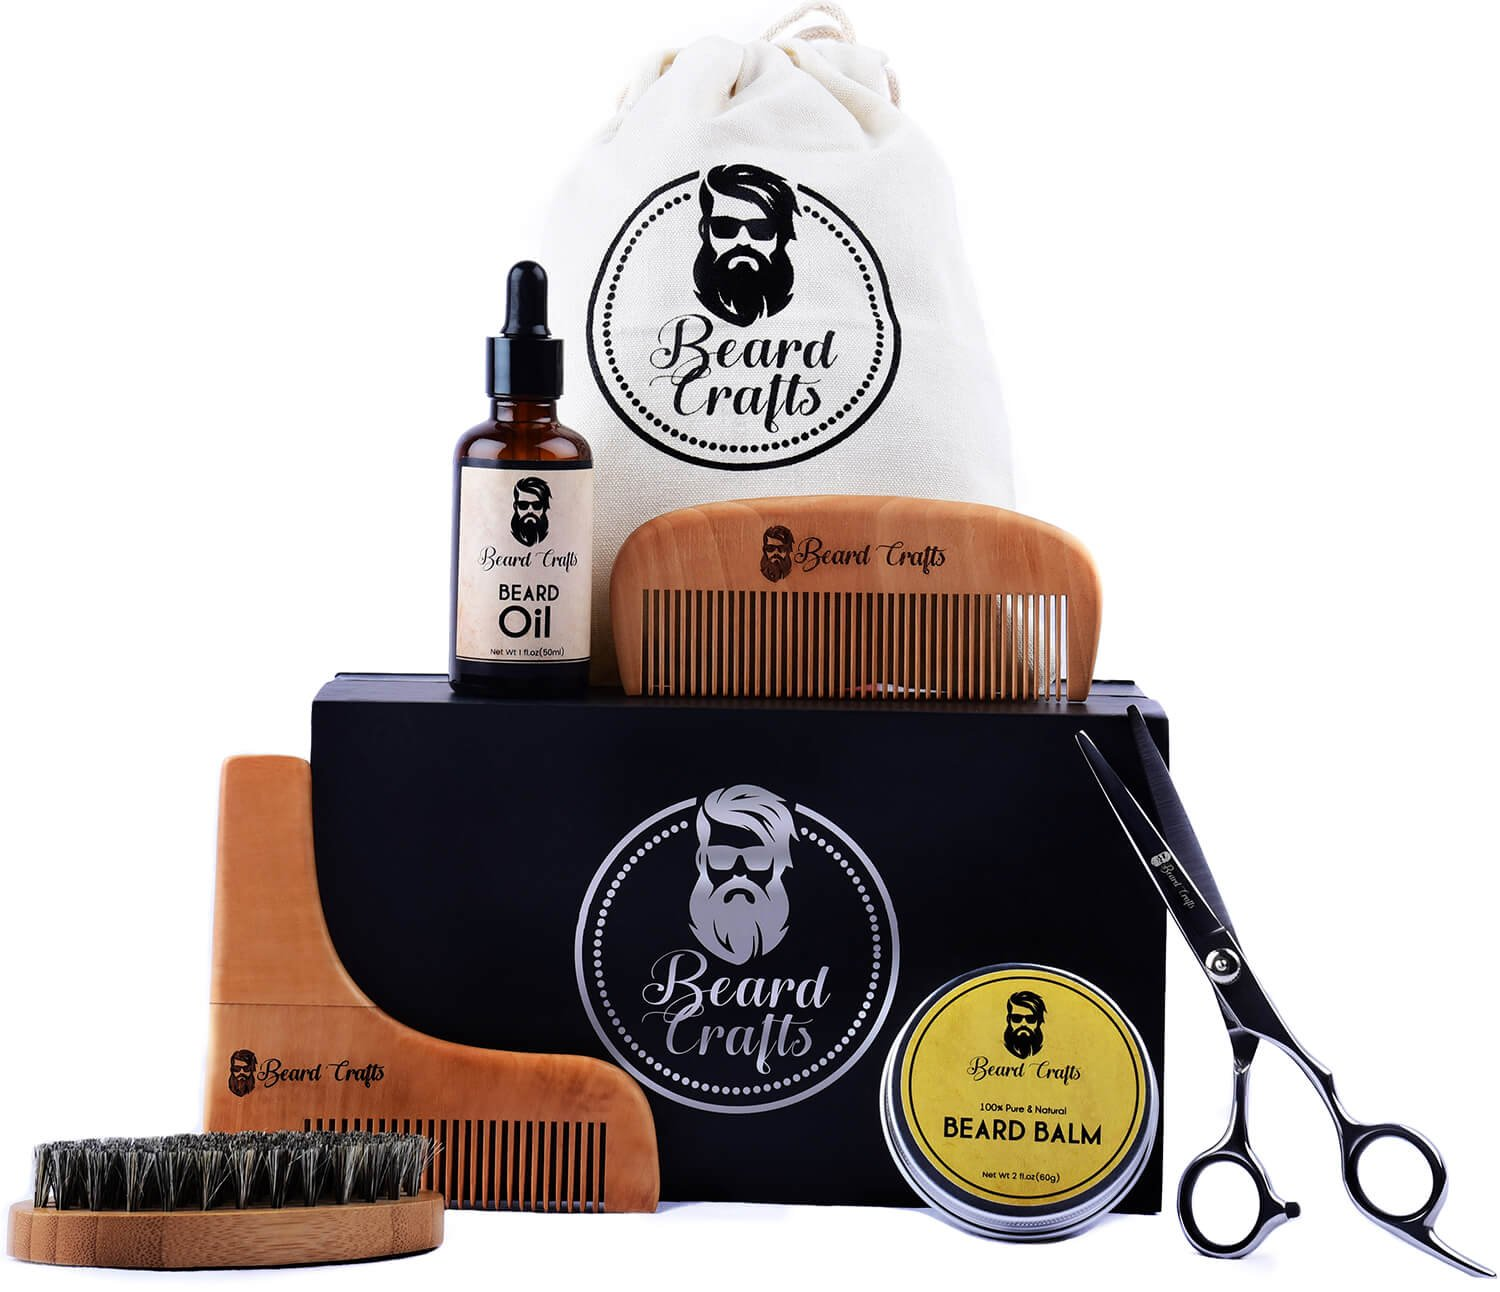 Beard Crafts Kit for Grooming & Trimming - Men Care With Beard Oil Leave-in Conditioner | Beard Balm Butter | Wooden Comb | Boar Bristle Brush | Scissors & Shaping Tool for Styling & Growth Gift Set